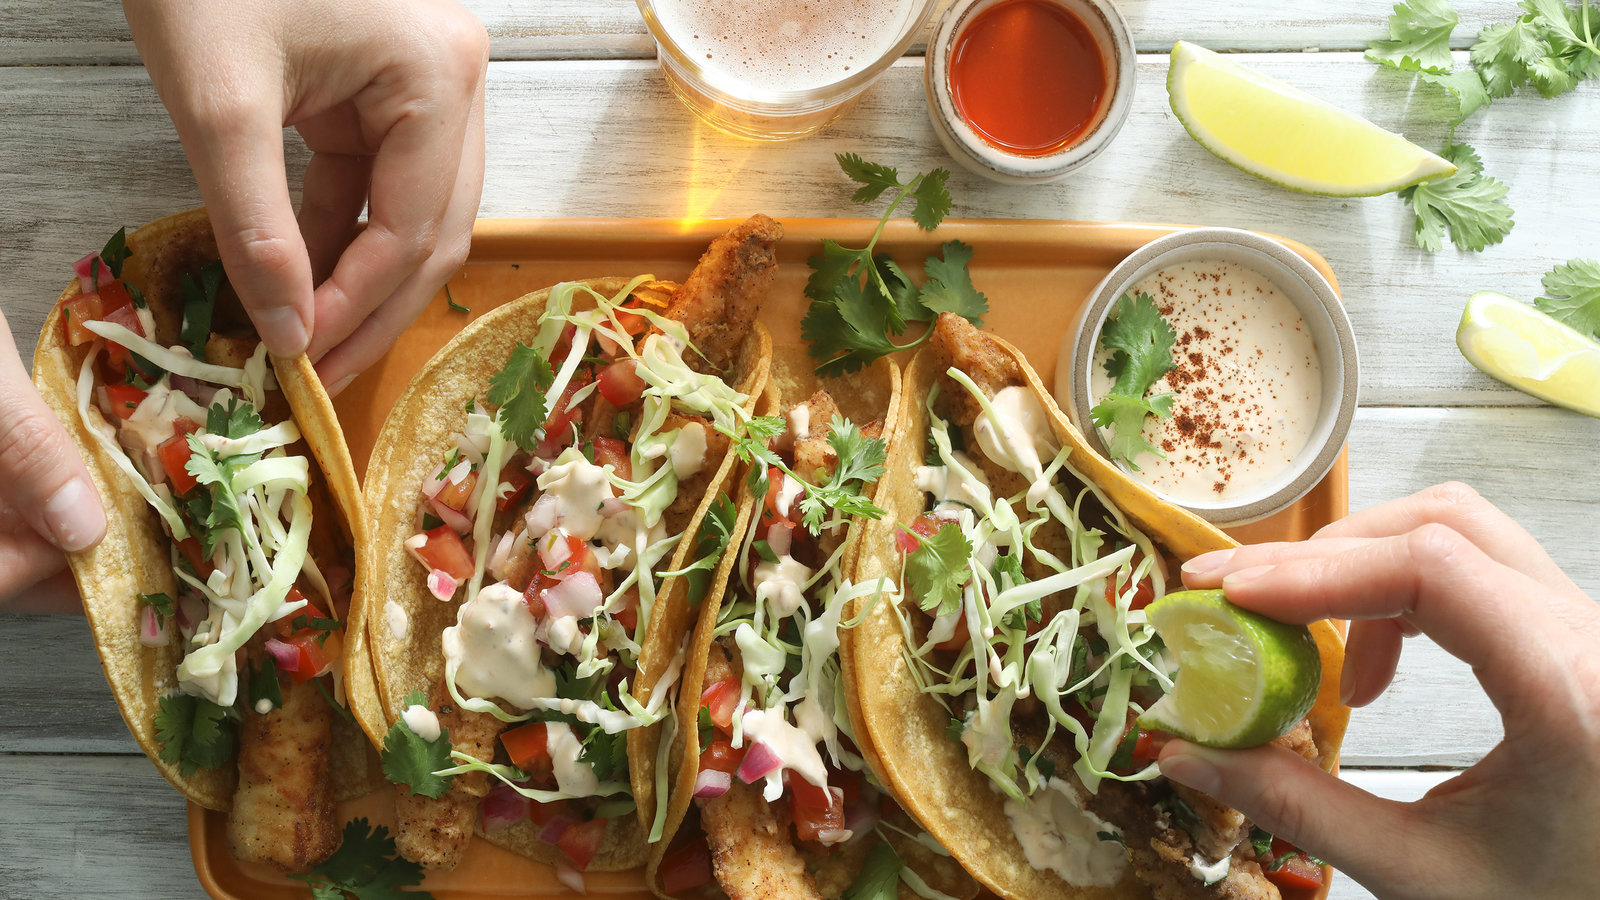 Garage Fish Tacos Near Me Fish Tacos Mexico City Fish Tacos Recipe Nyt Cooking Place nice food Best Fish Tacos Near Me